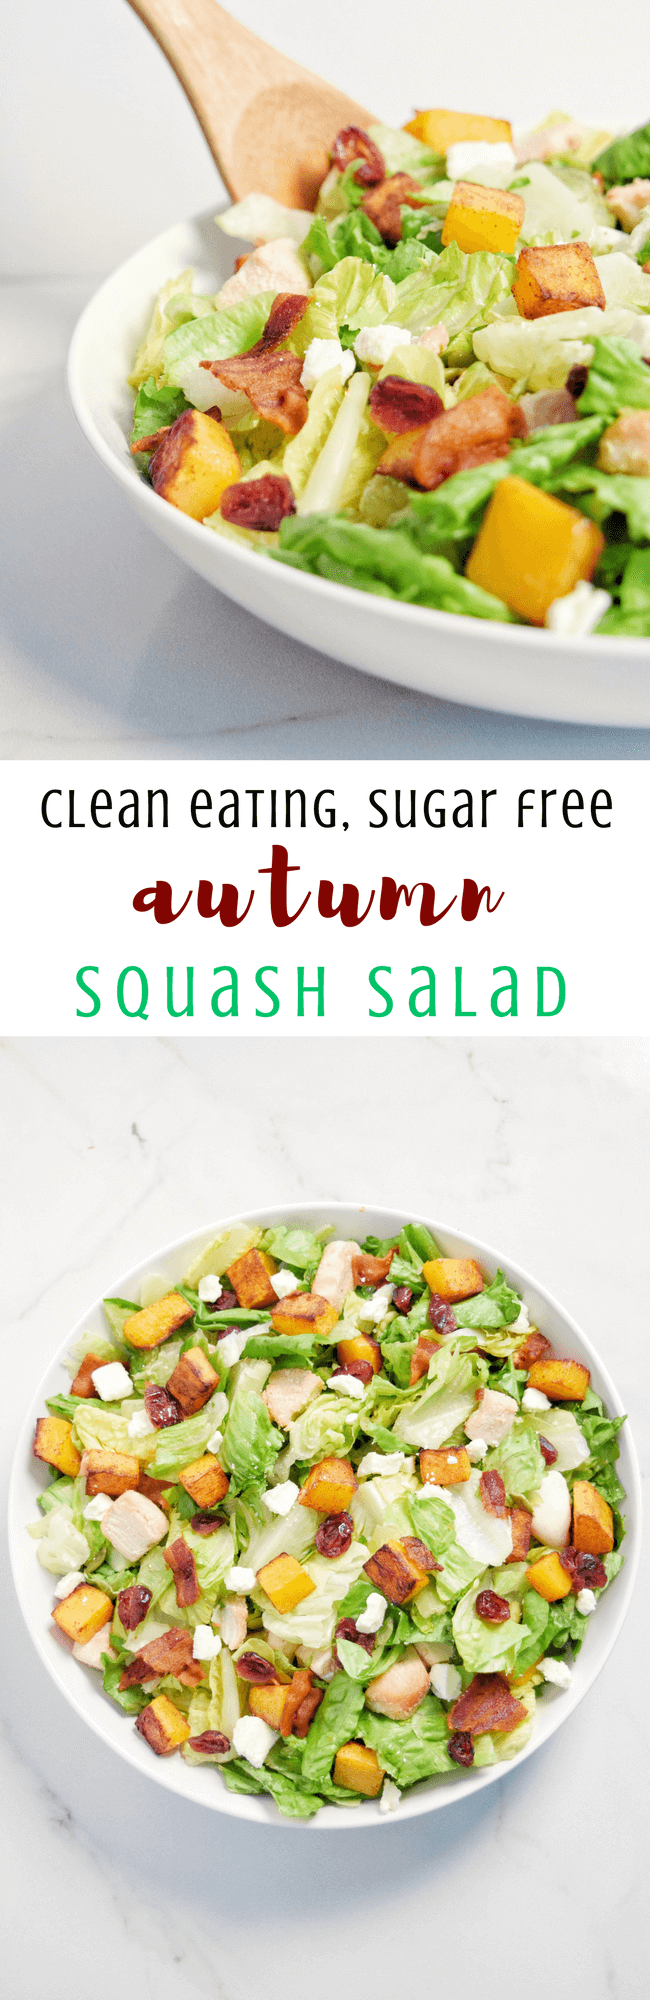 Clean Eating Autumn Squash Salad (Gluten Free, Grain Free) | Personally Paleo